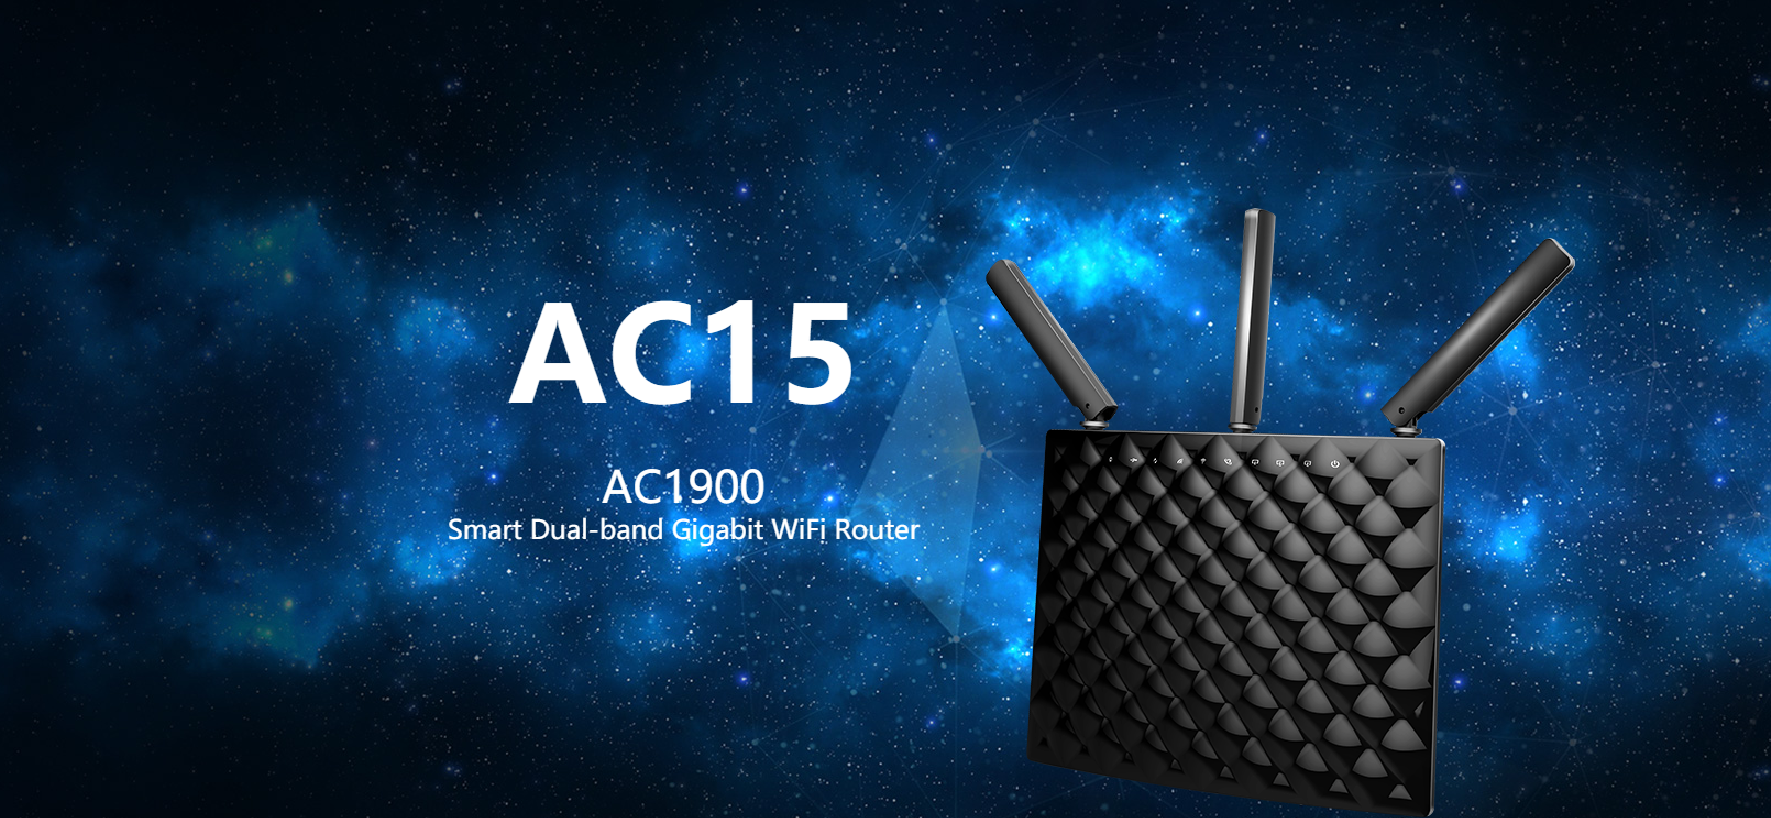 Researchers Say This Router Is Open to Outside Attack by Hackers